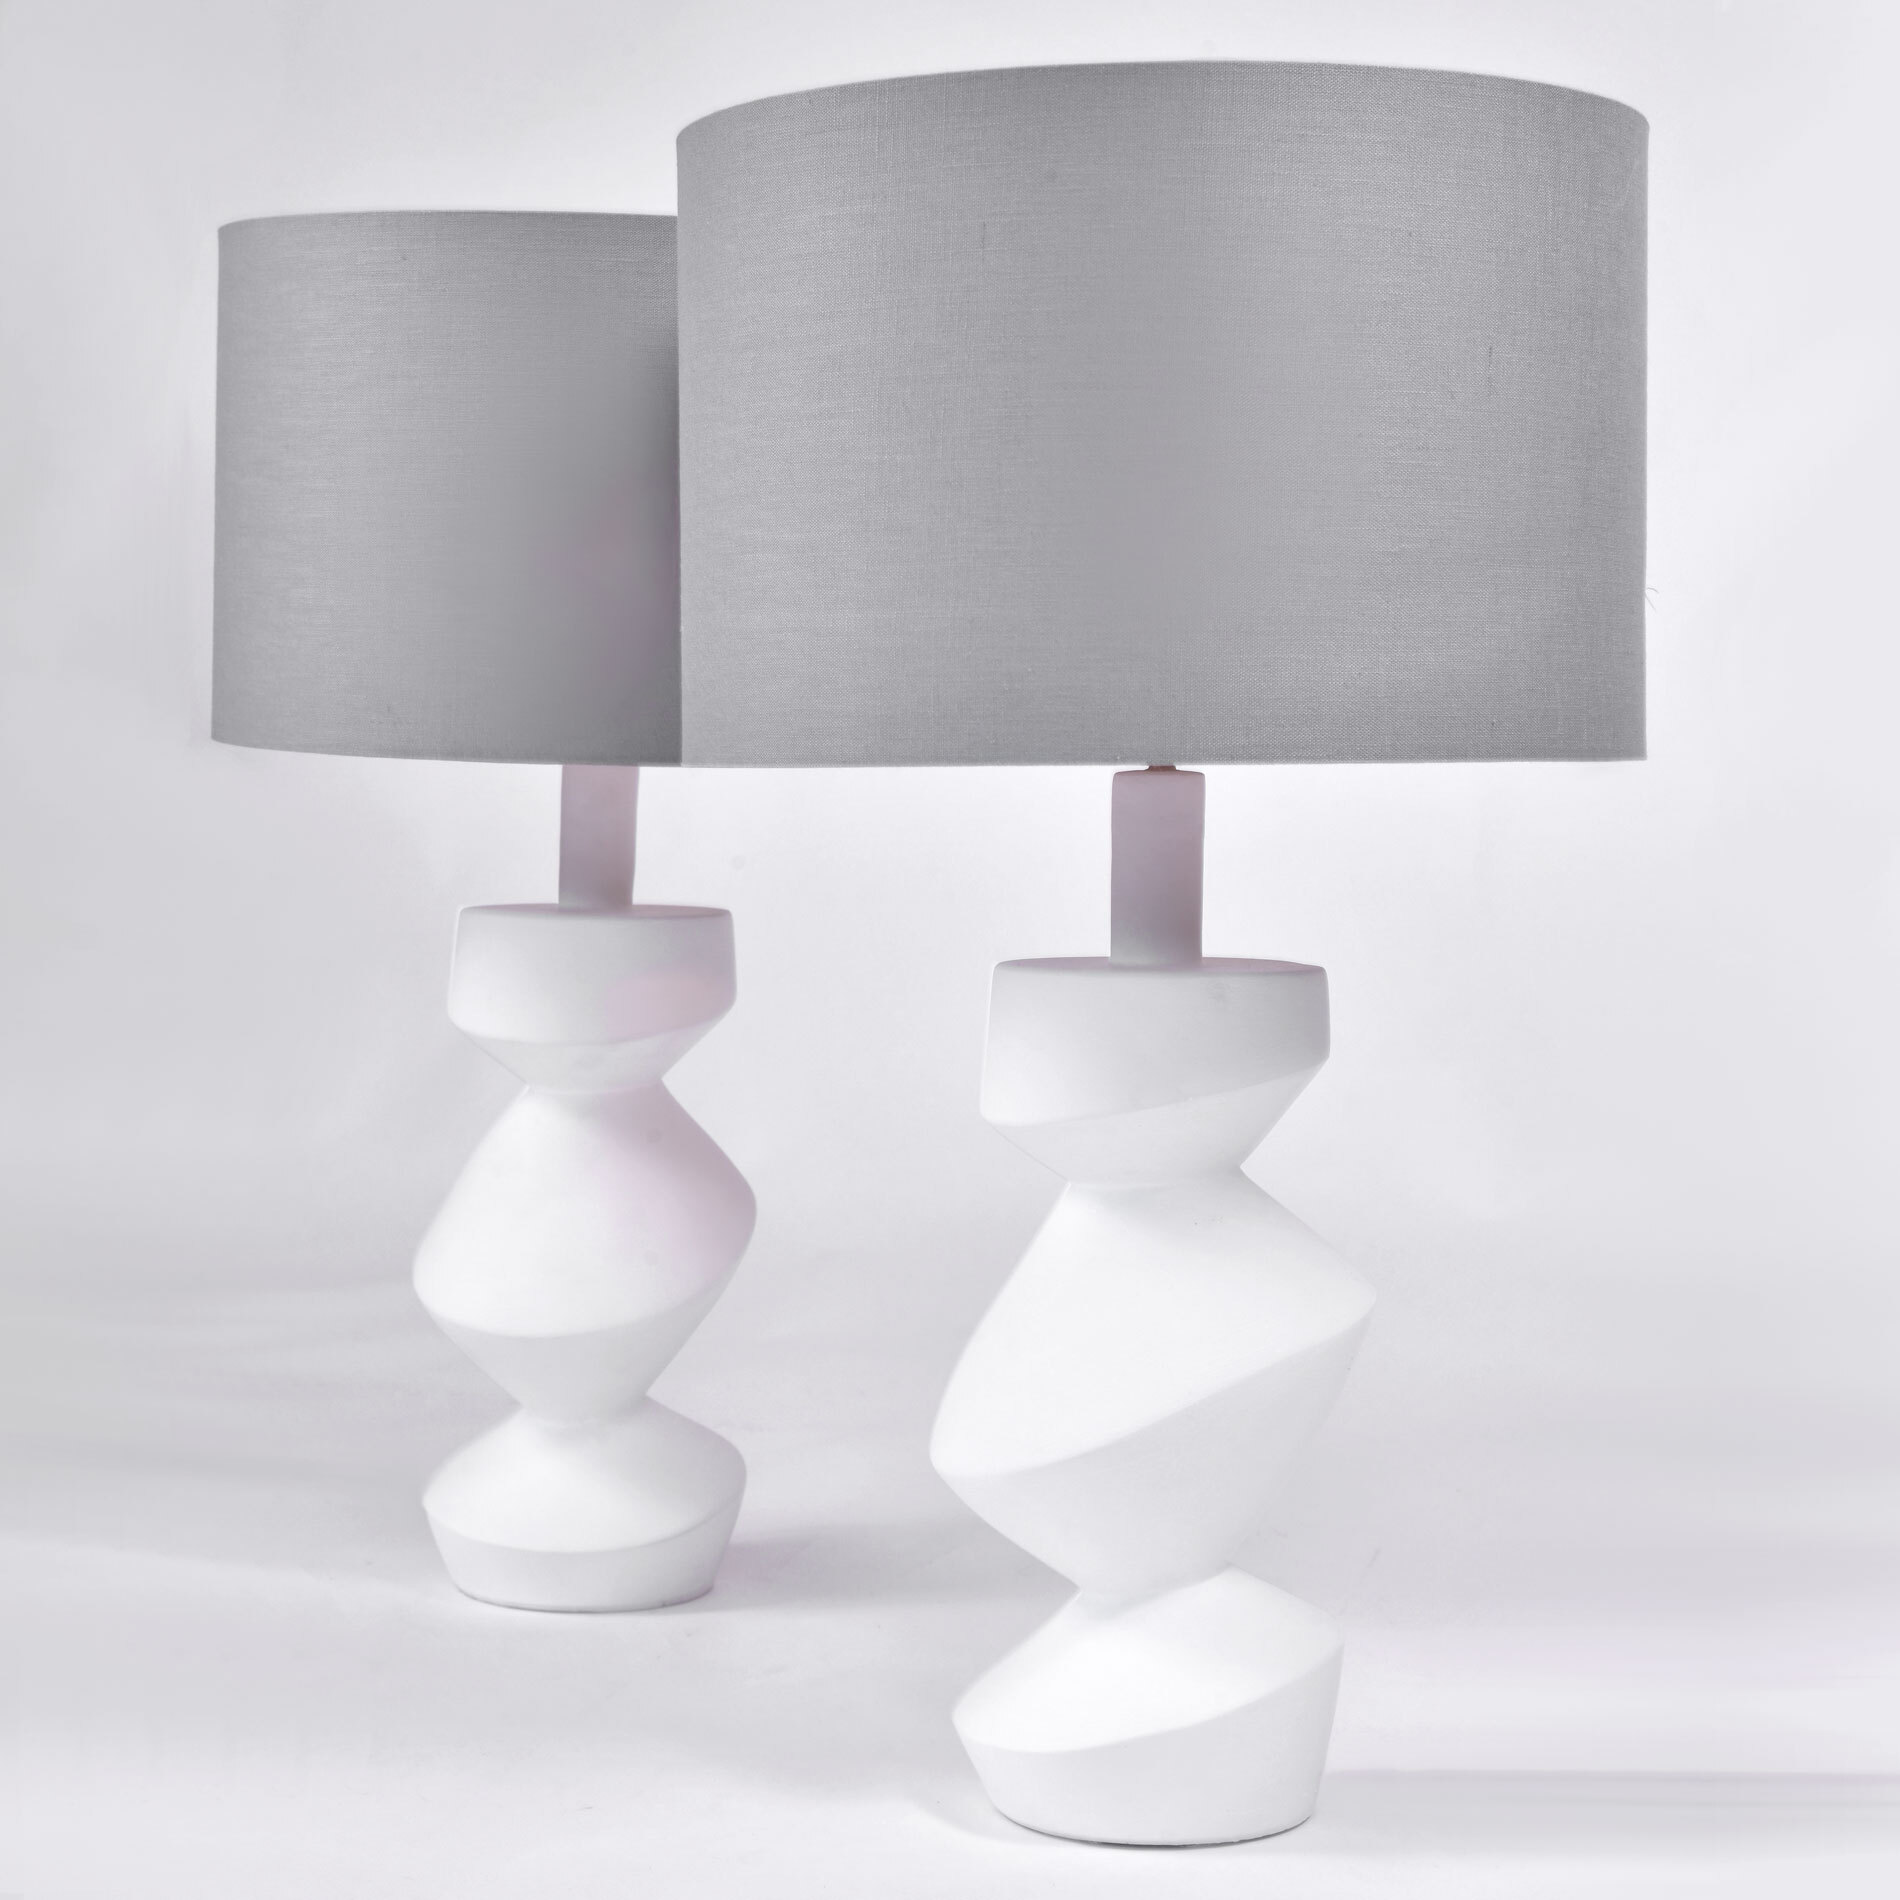 The image for Pair Savoy Lamps Natural Plaster 01